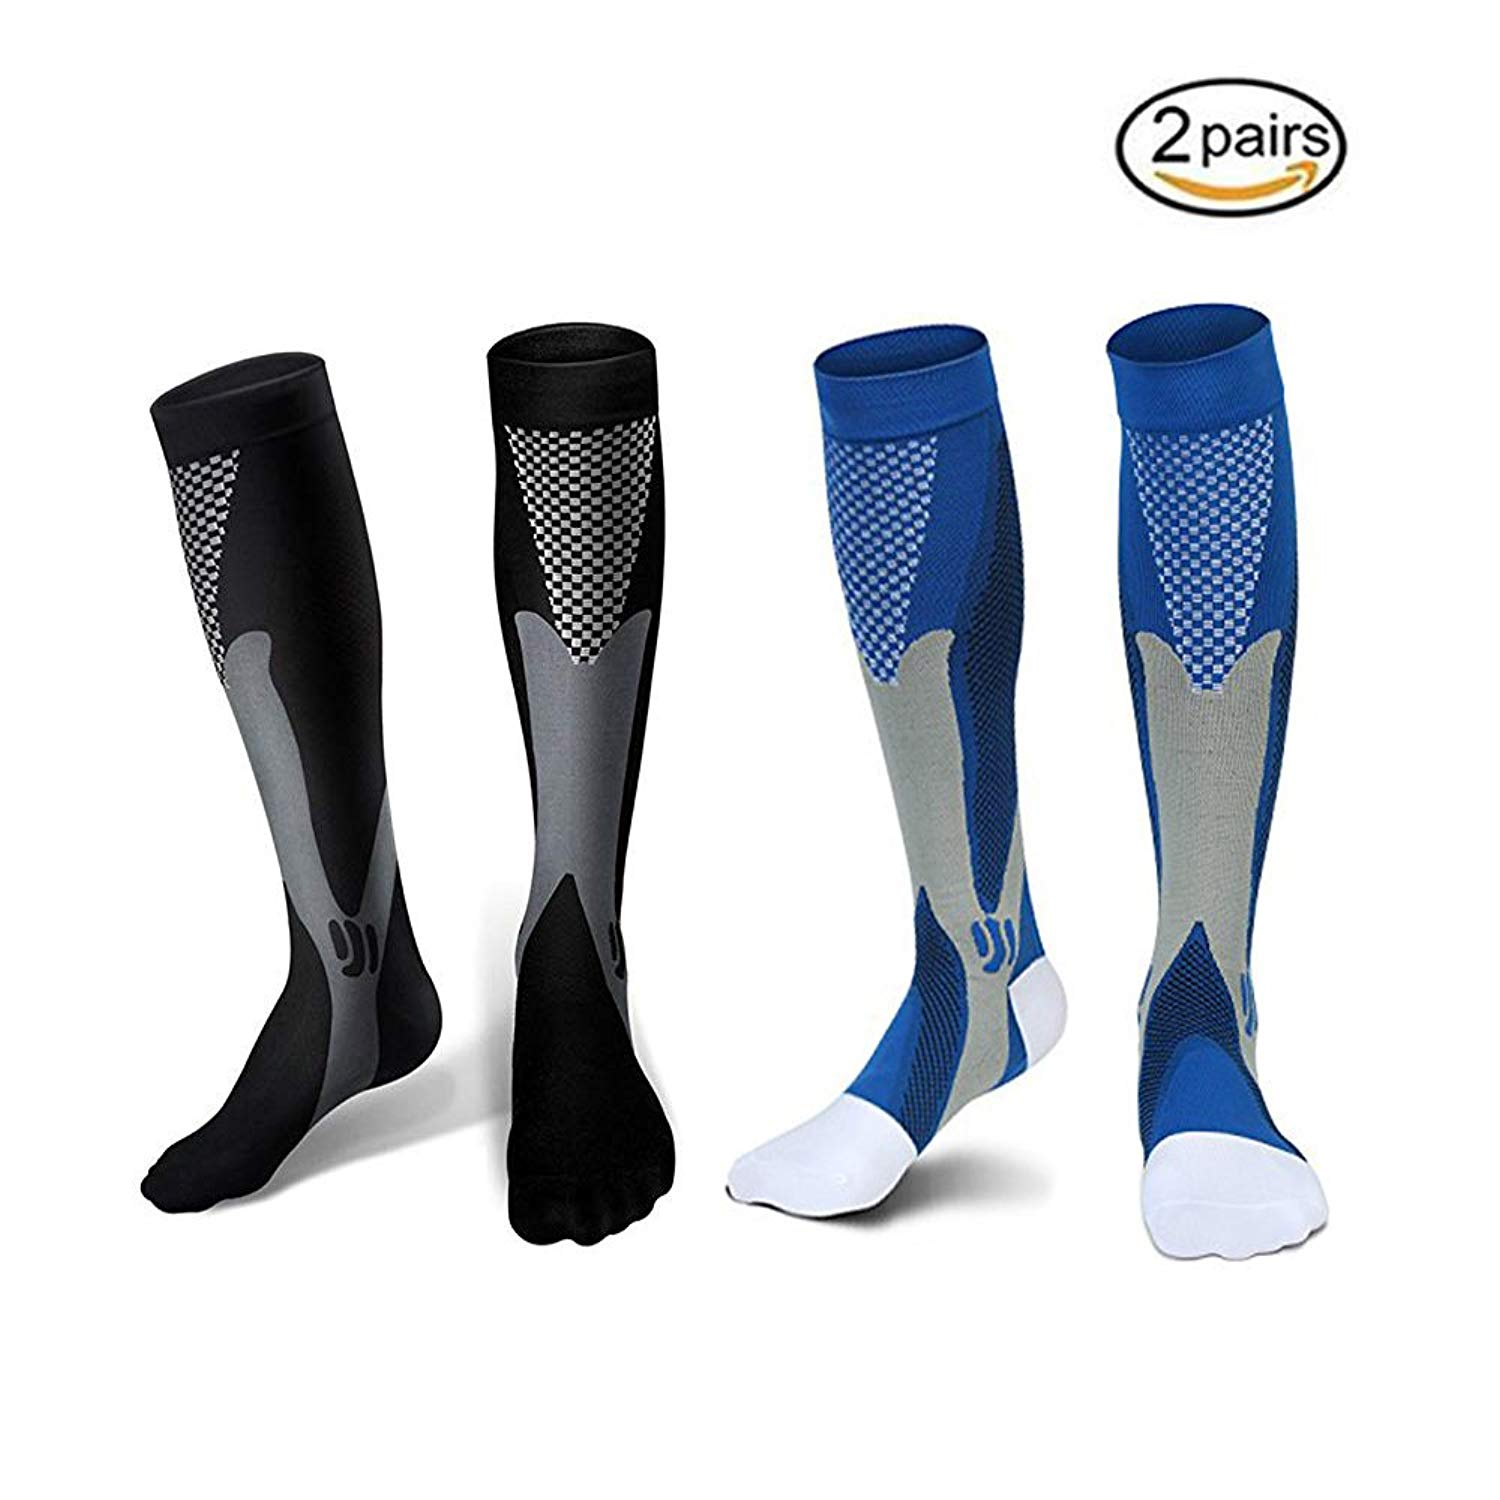 ce8ebe01a9 Get Quotations · Compression Socks,Urwish Unisex Athletic Stockings for  Recovery-Nurses,Sports, Maternity,